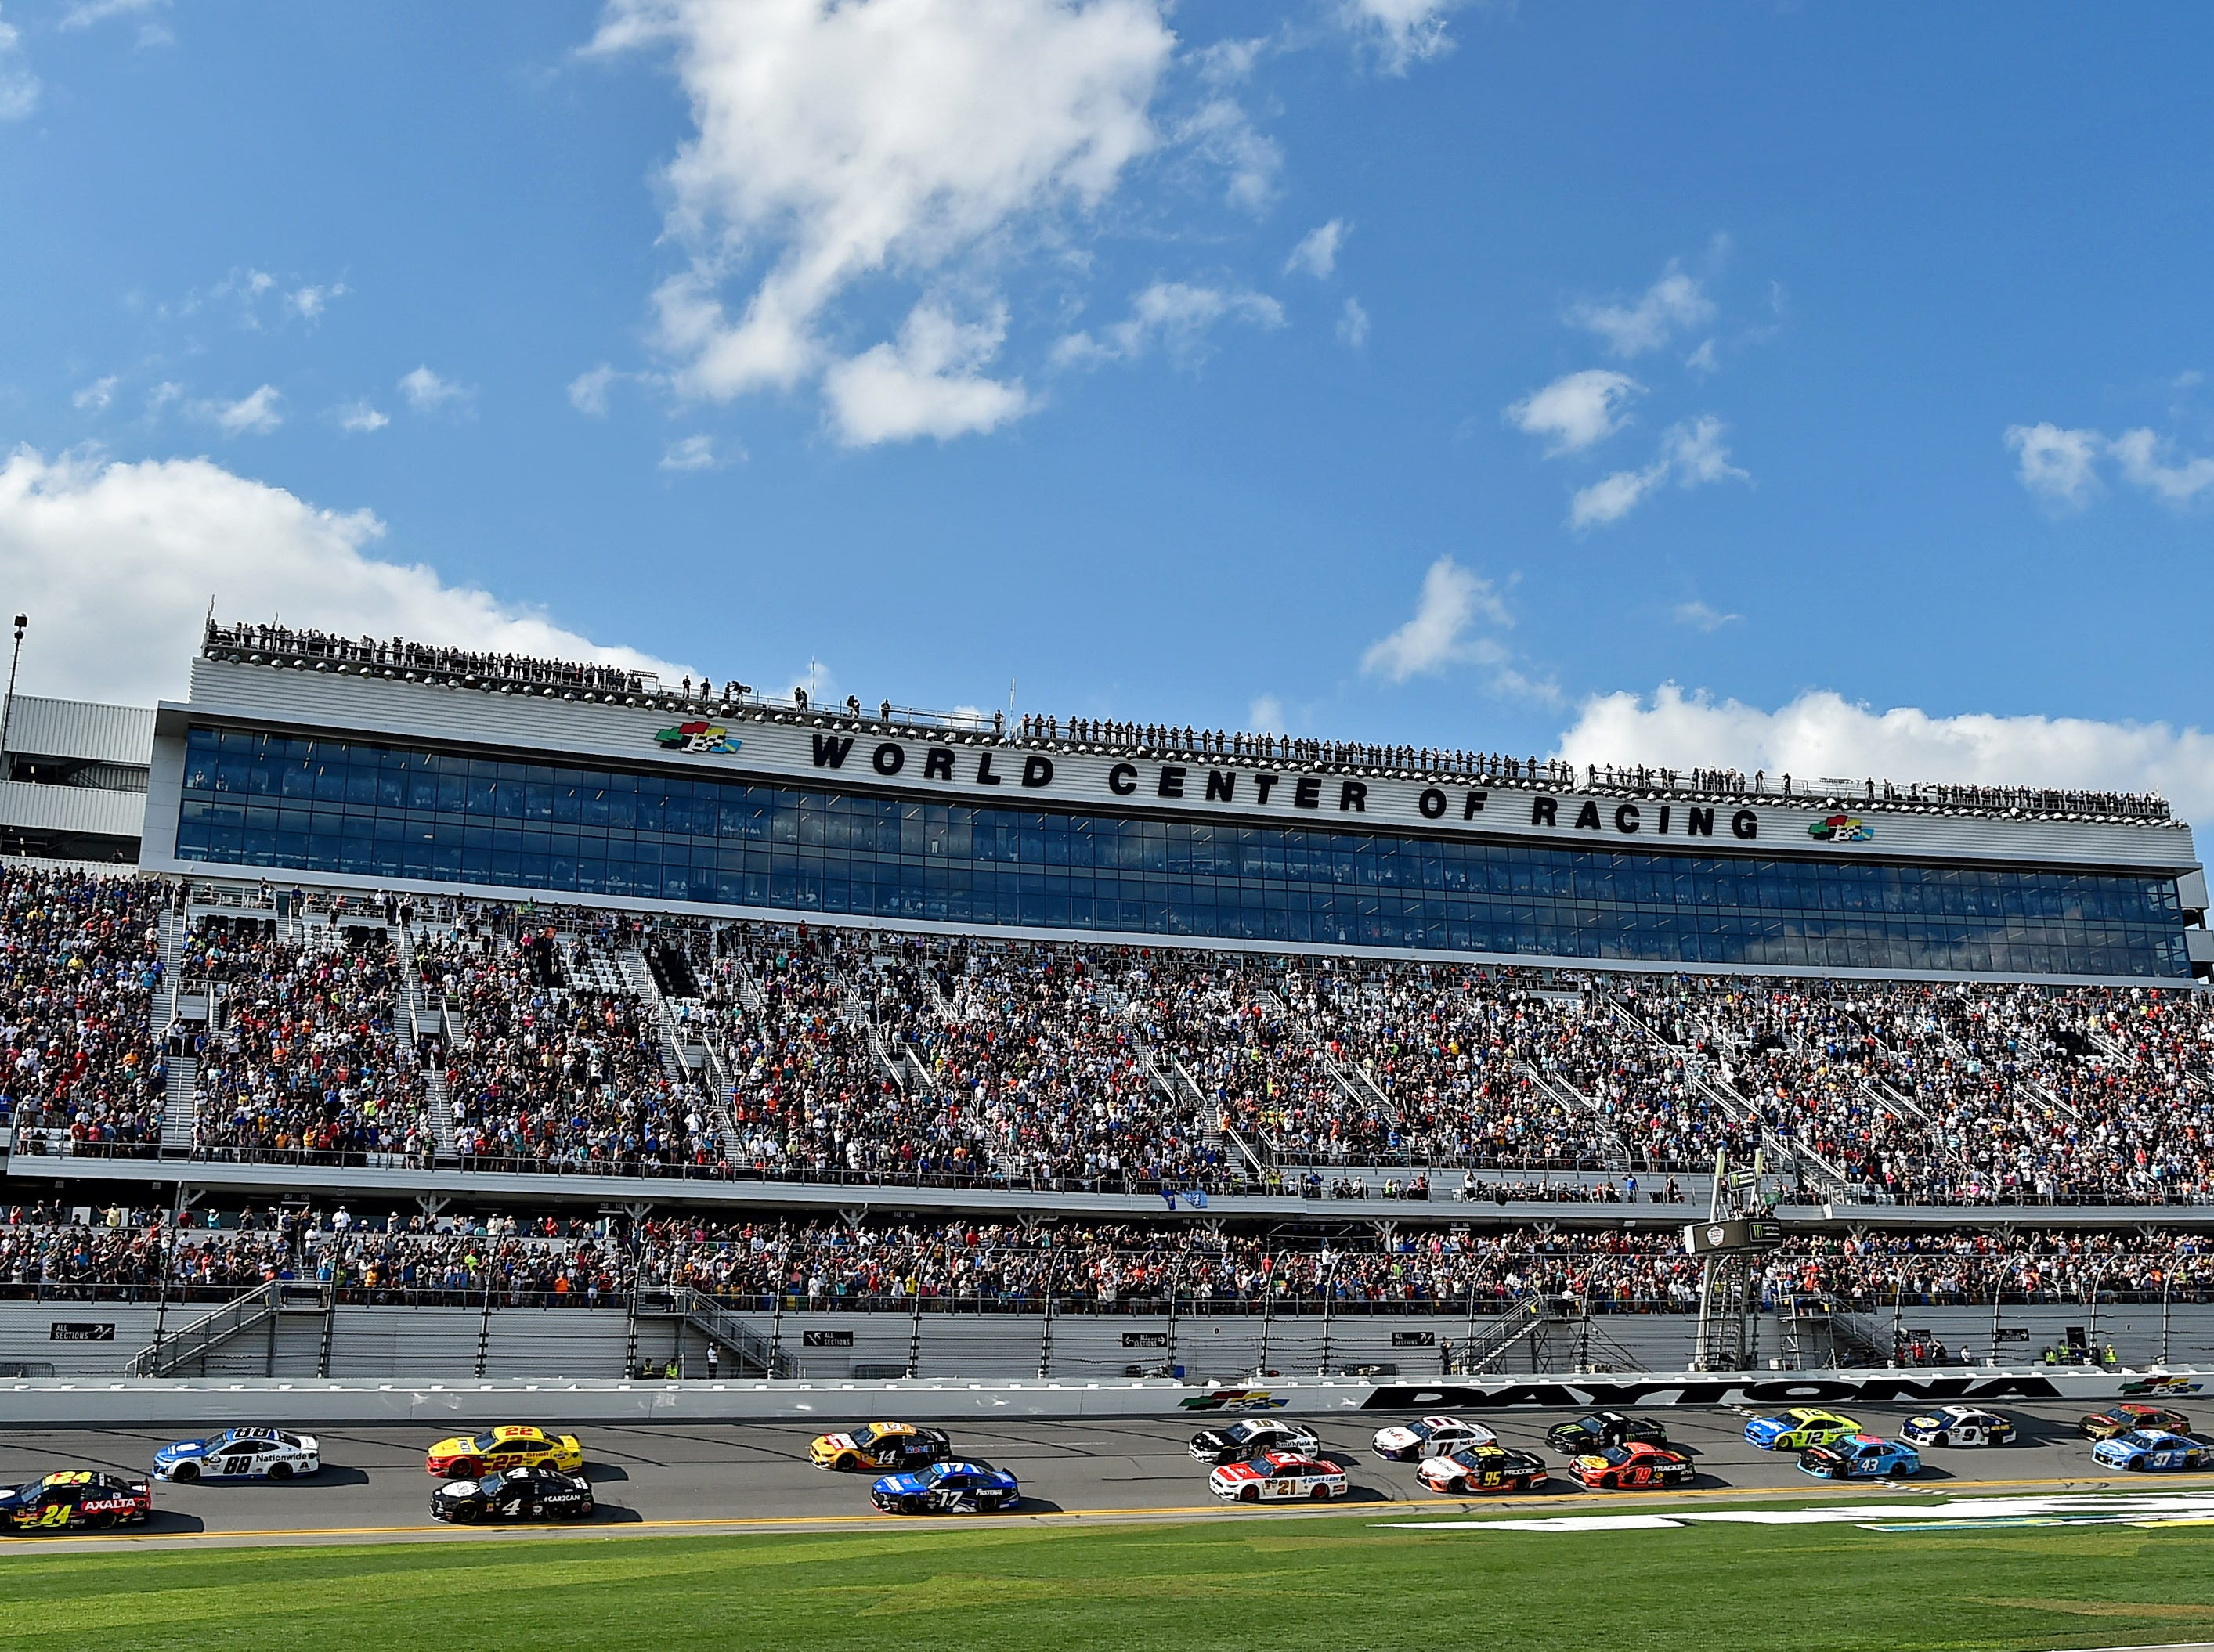 Hendrick Motorsports drivers William Bryon (24) and Alex Bowman (88) lead the field to the start of the 61st annual Daytona 500 at Daytona International Speedway.